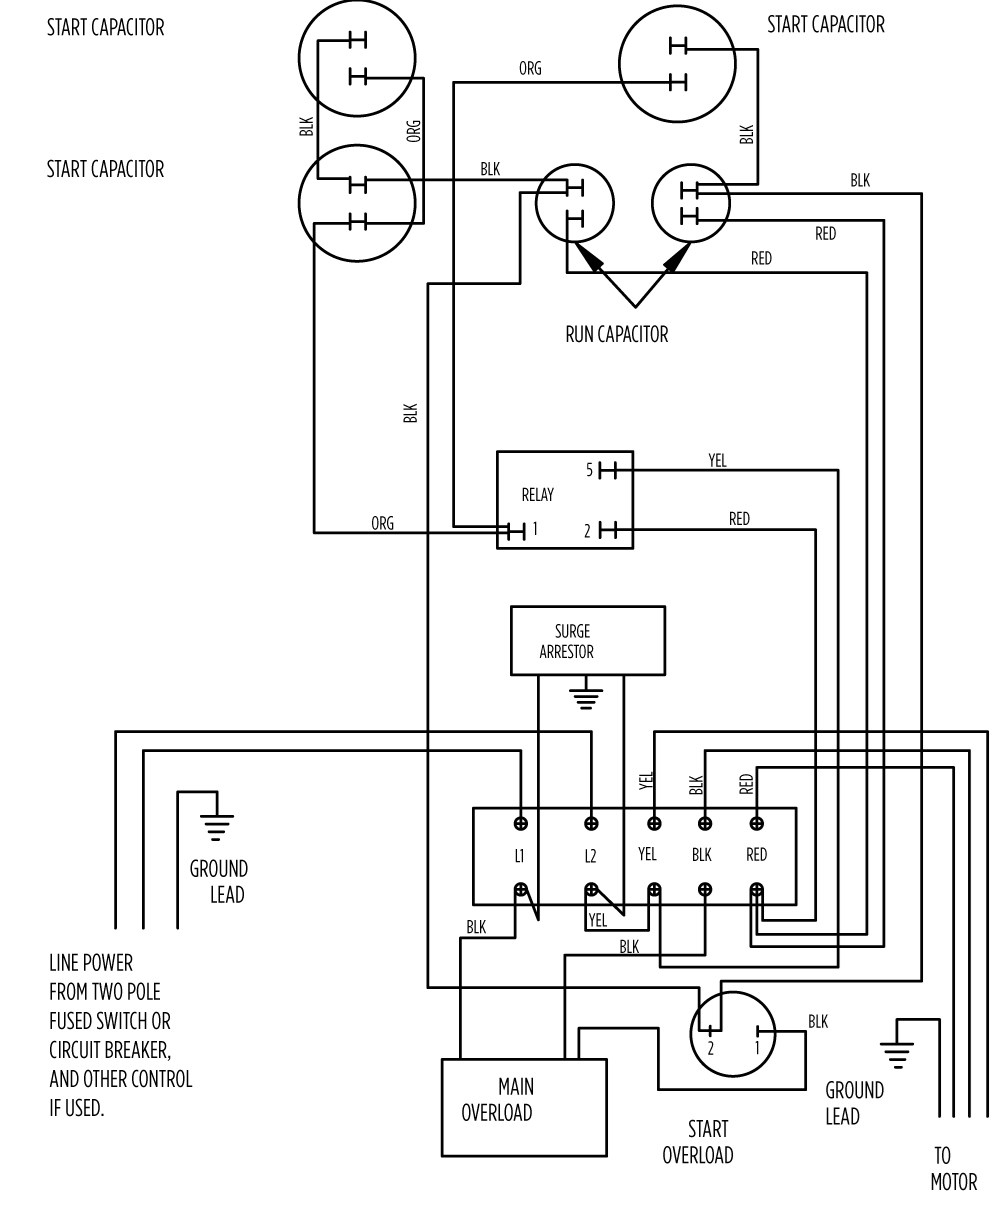 hight resolution of motor wiring diagrams likewise on 10 hp baldor motor capacitor baldor motor wiring diagrams reversible 10 hp baldor motor wiring diagram